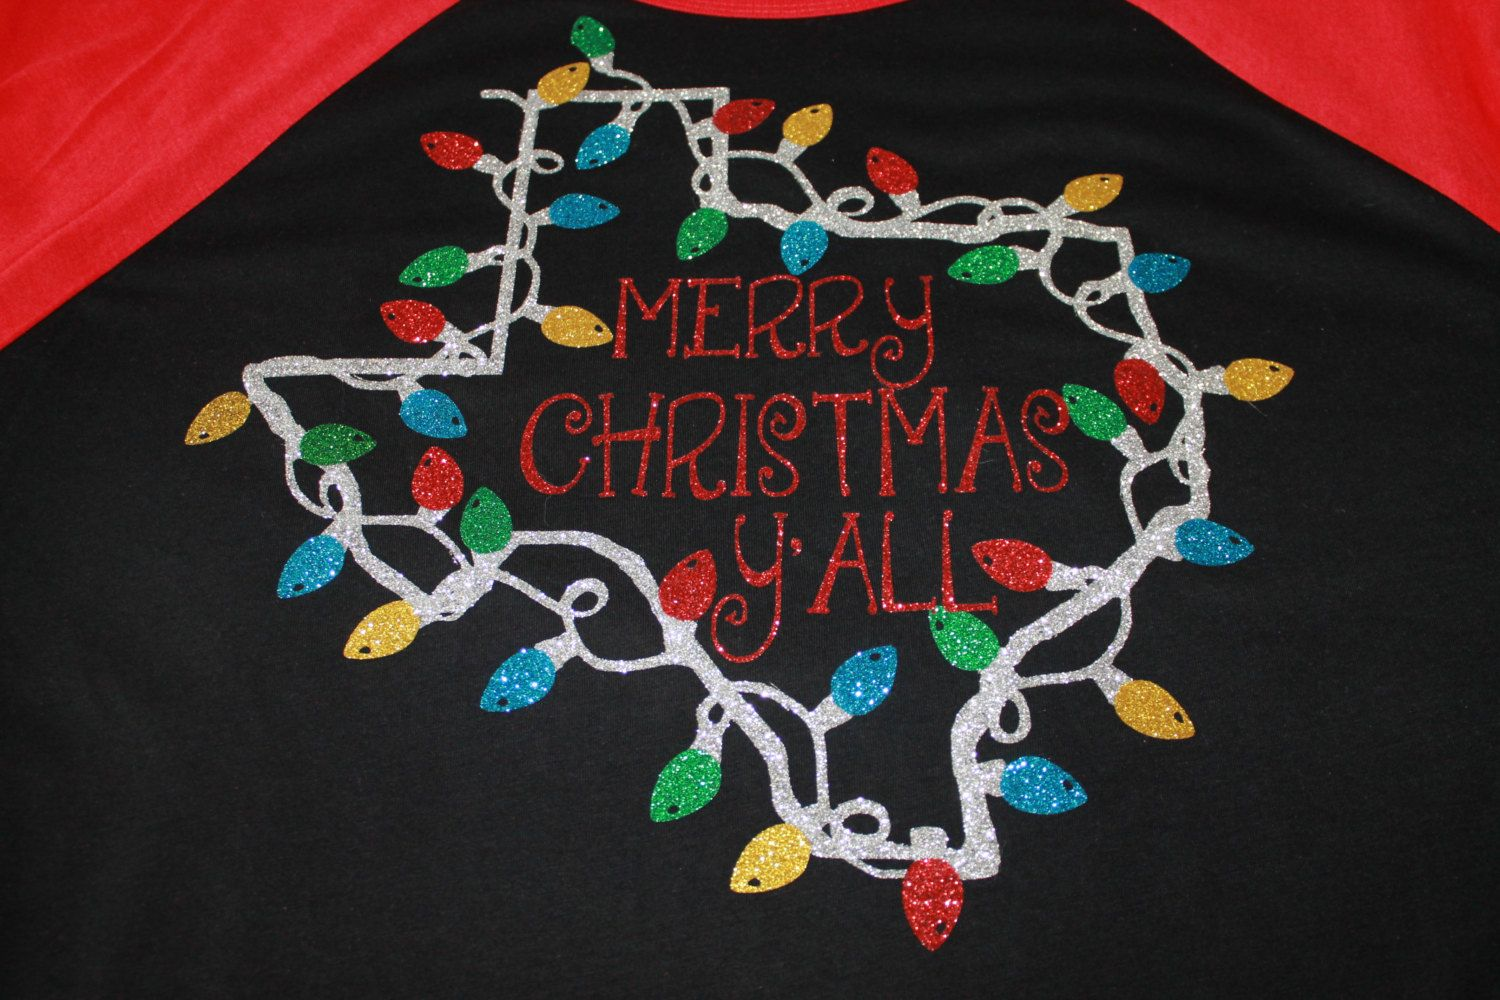 merry christmas yall shirt merry christmas texas shirt texas shirt christmas shirt christmas bling shirt christmas outfit bling shirt by